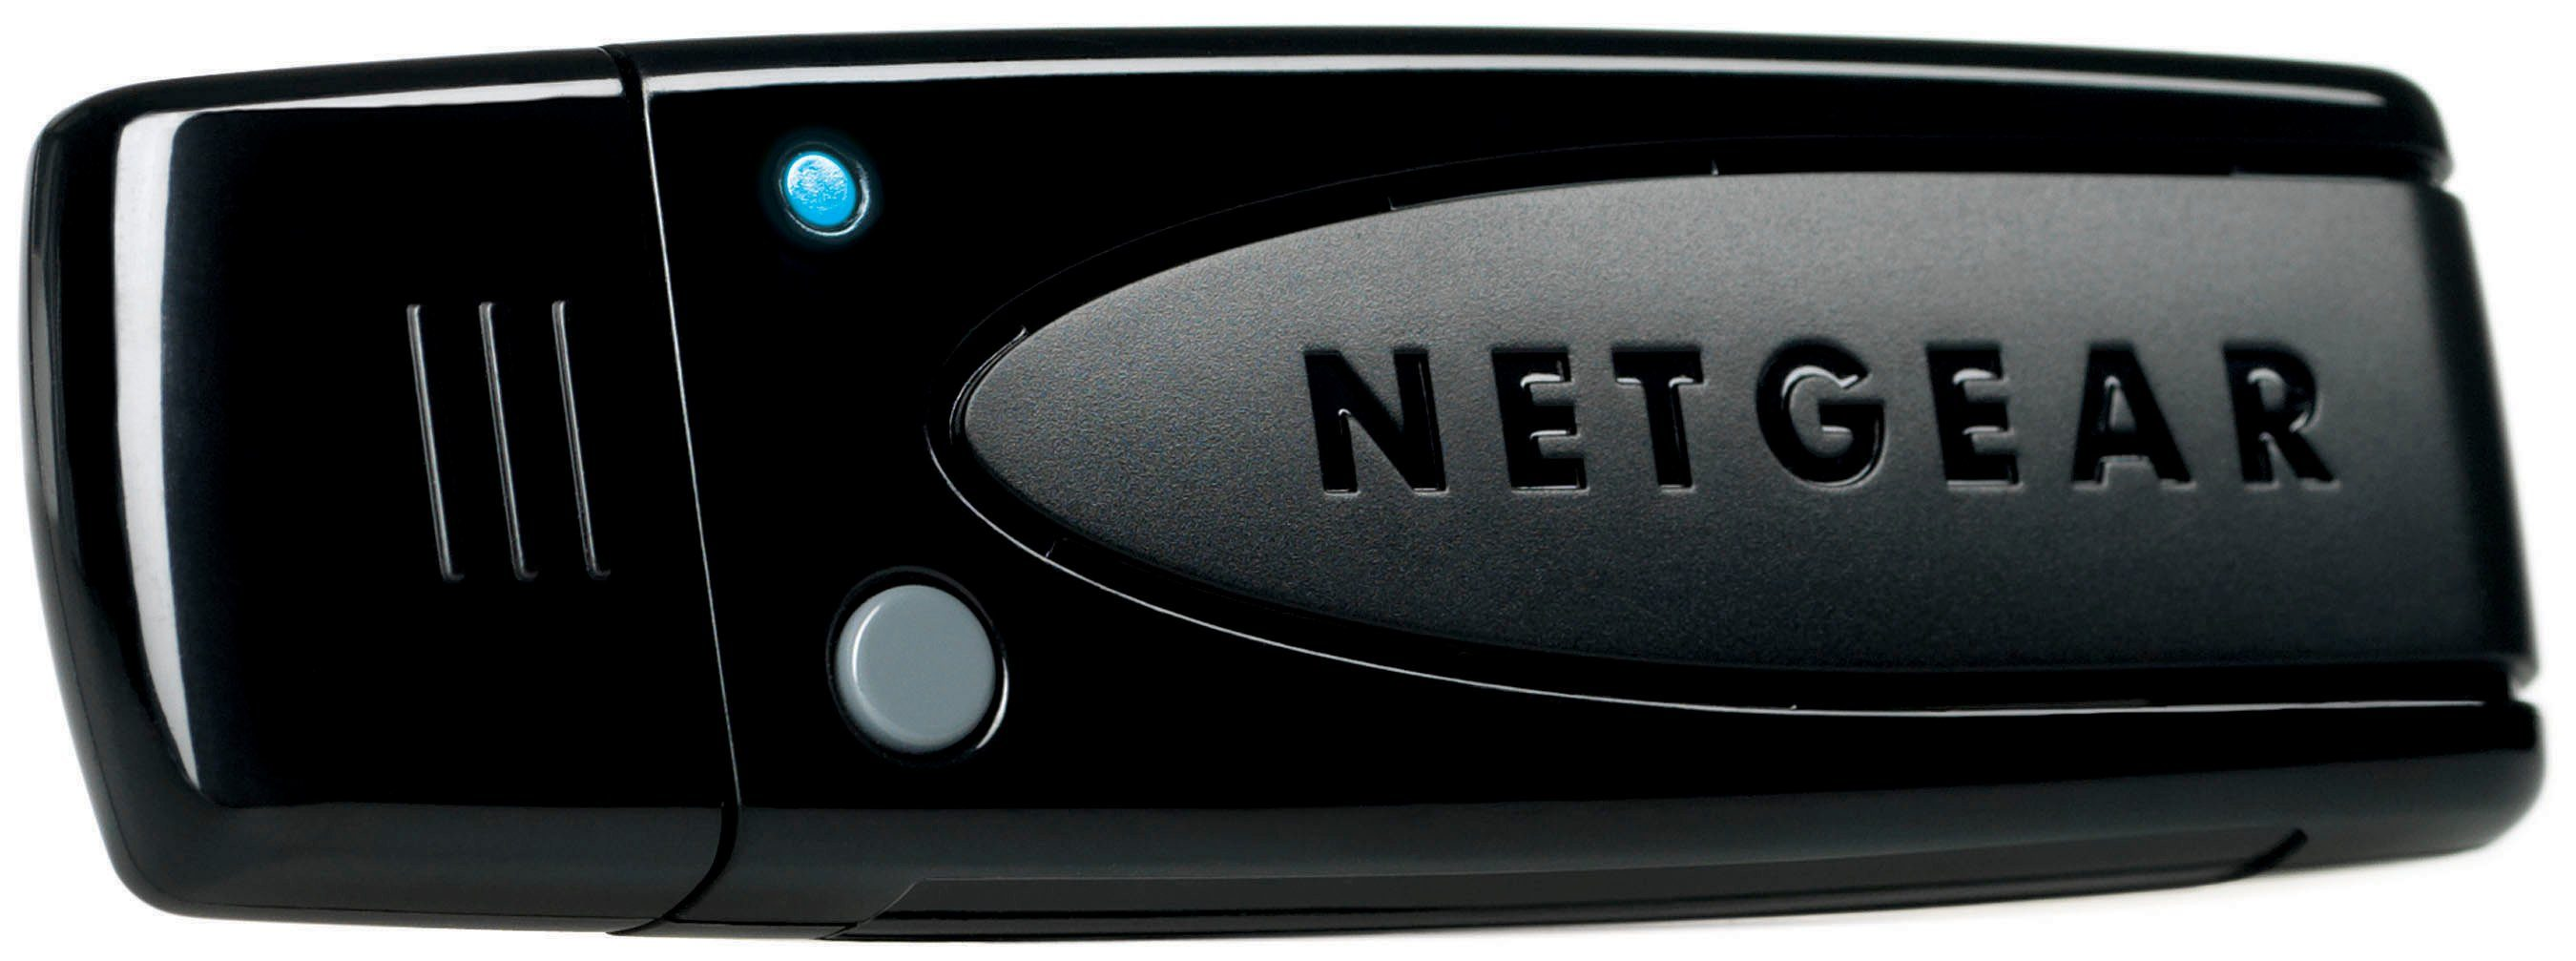 Netgear WLAN Adapter »N300 Wireless Dualband USB Ad«